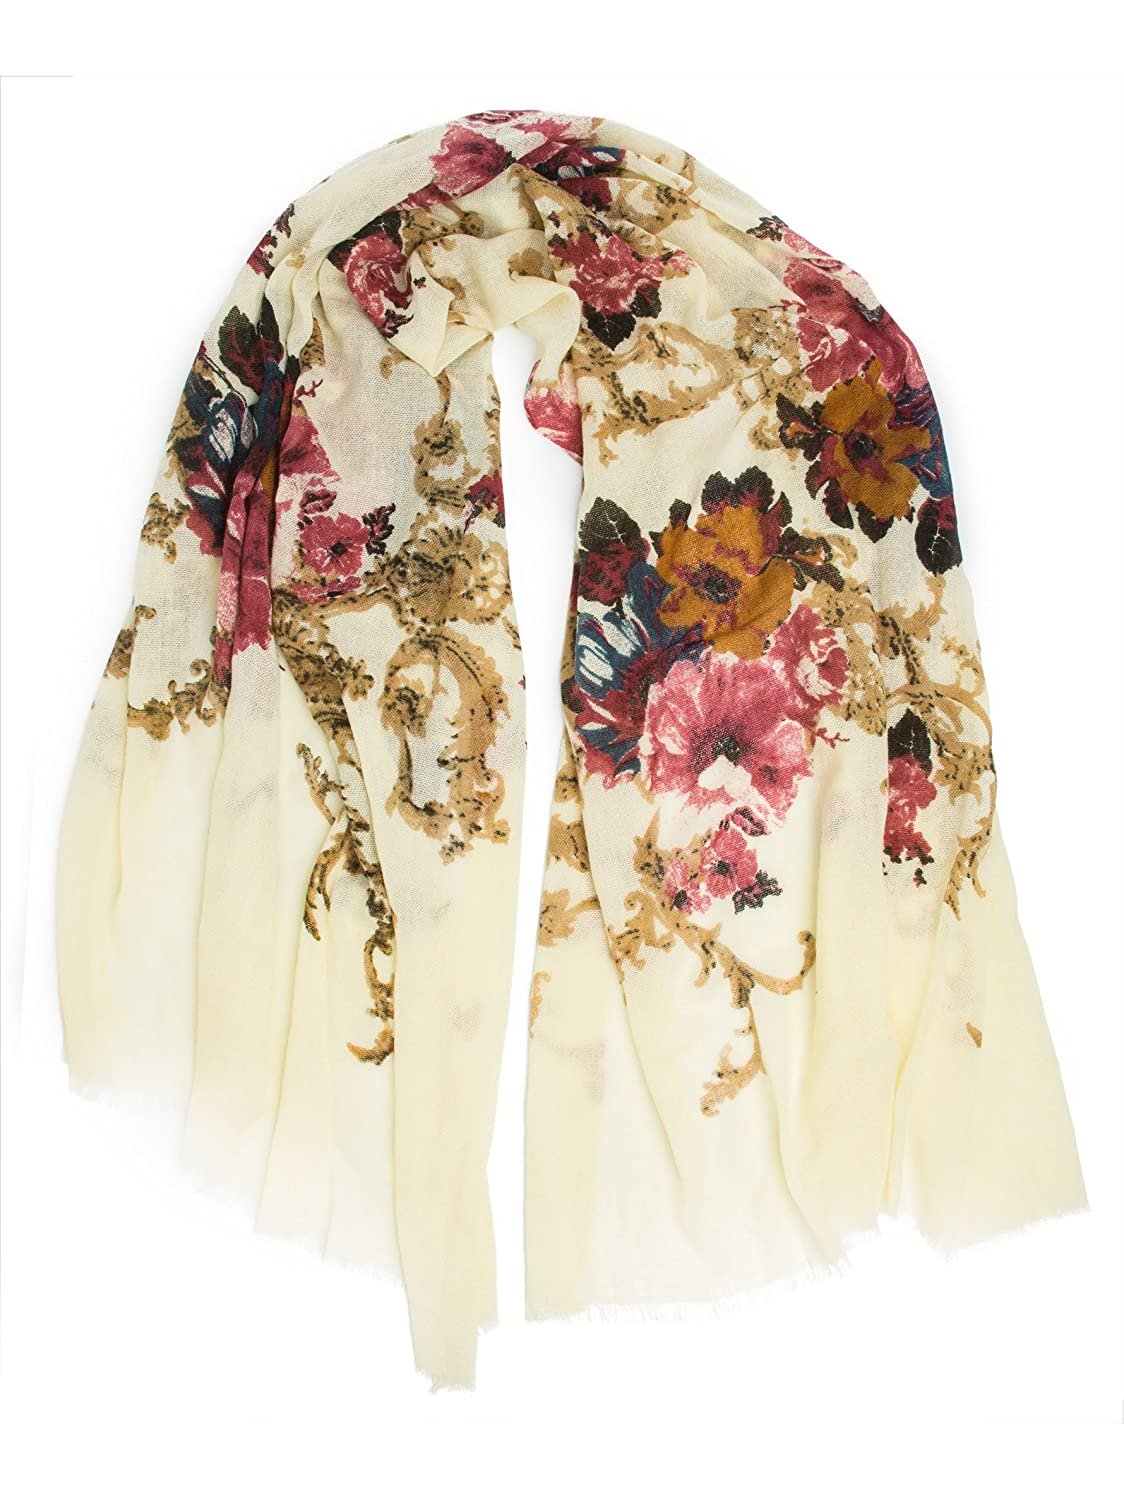 07a3bc551 Victorian Hand Fan, Gloves, Belt Accessories Eleanor blanket scarf  oversized winter scarf floral scarf